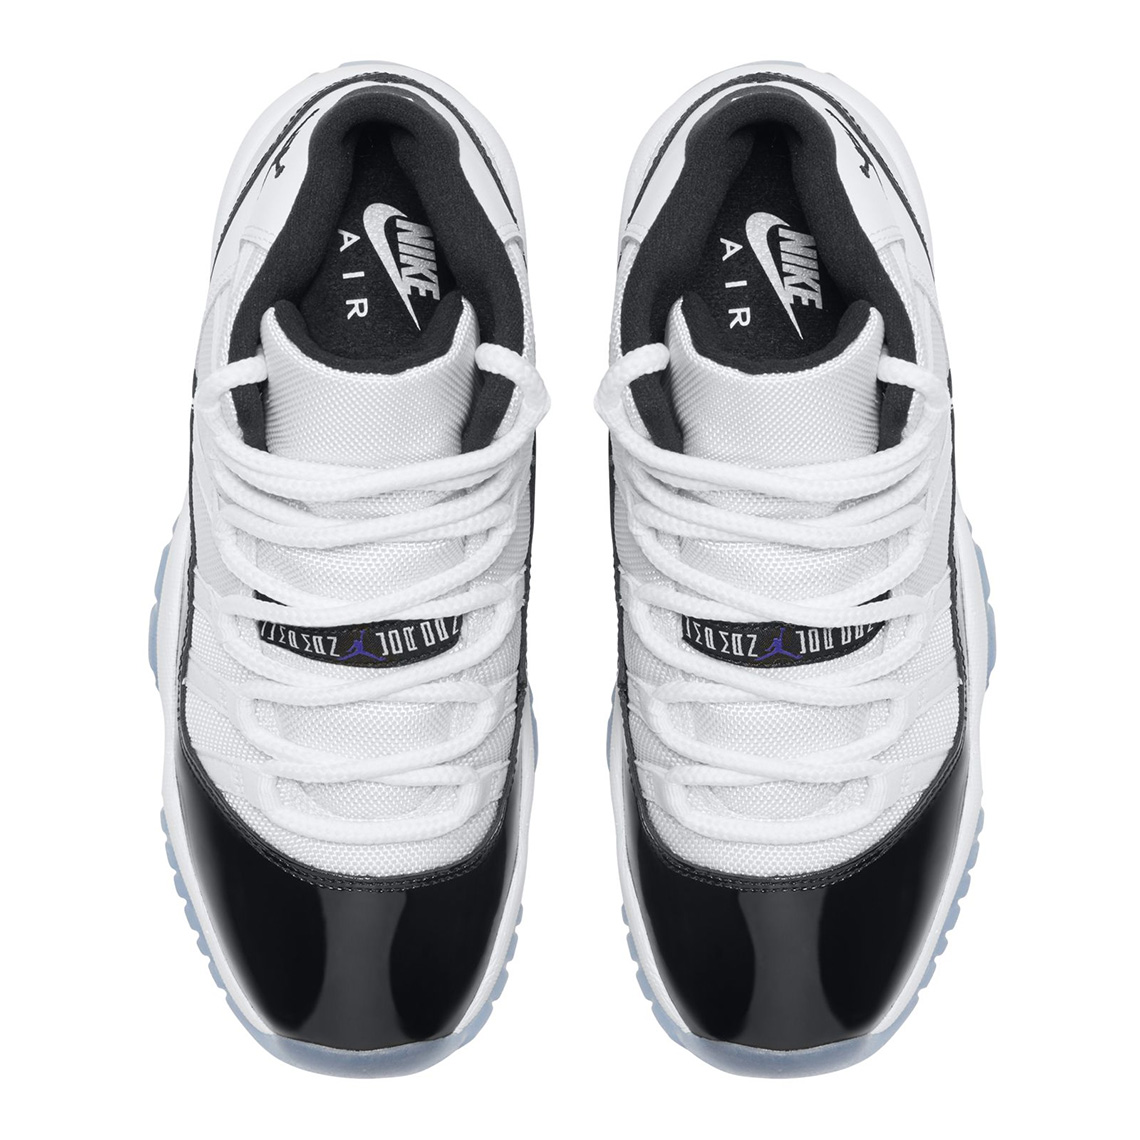 """new arrival 43990 95e25 Official Images Of The Air Jordan 11 """"Concord"""" In Grade School Sizes"""